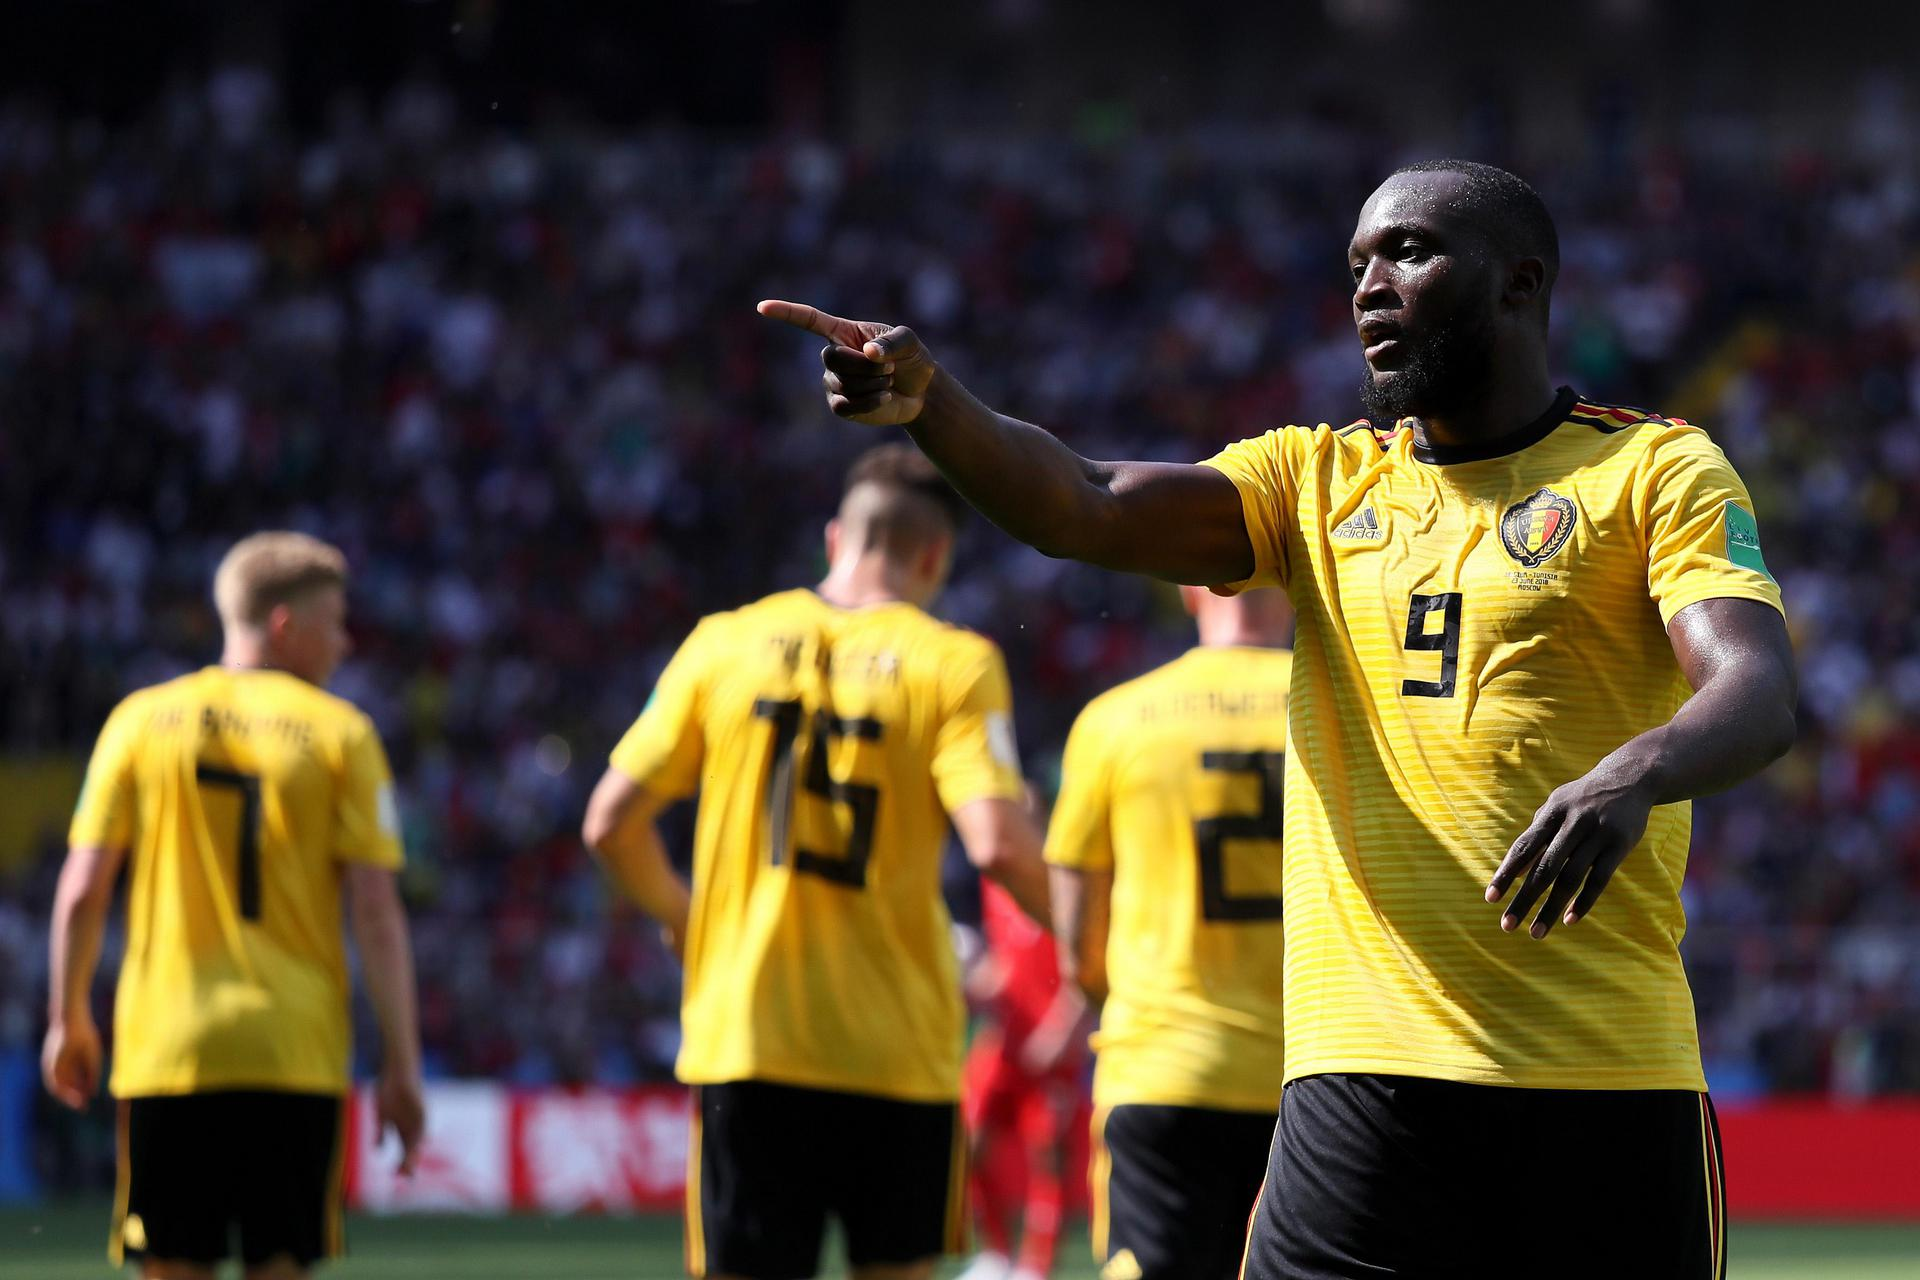 Romelu Lukaku points as he celebrates scoring for Belgium